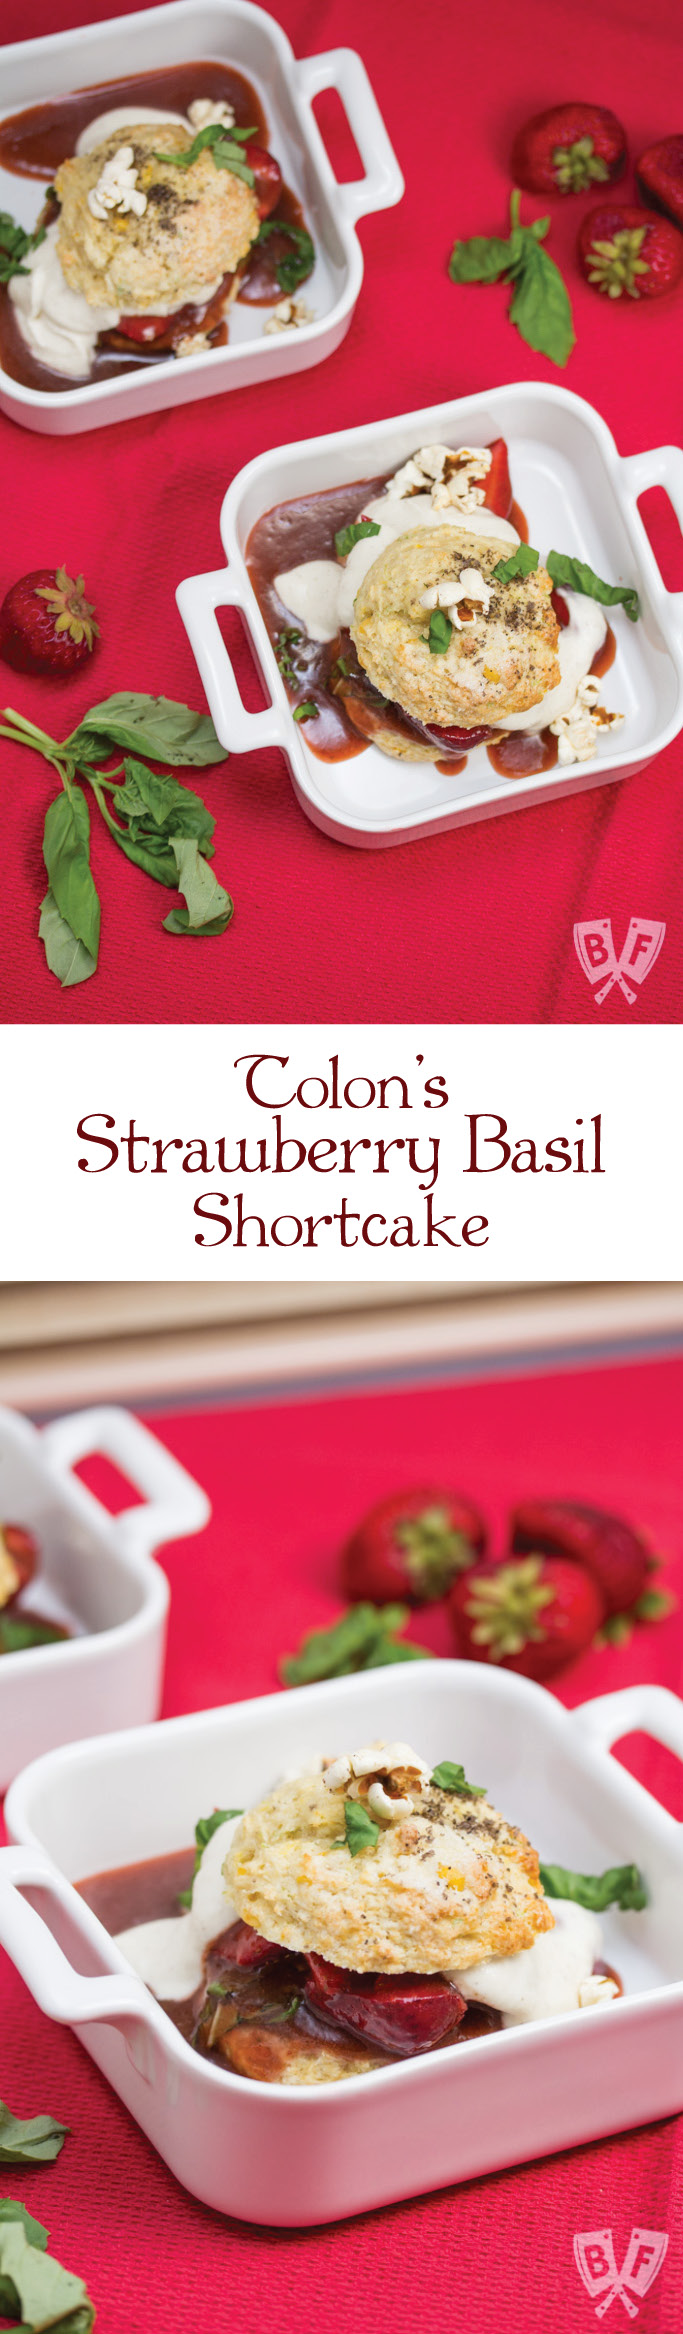 Big Flavors from a Restaurant Kitchen Volume 12: Tolon's Strawberry Basil Shortcake: This installment features the results I got baking Chef Matthew Nolot's Strawberry Basil Shortcake recipe in my tiny kitchen!